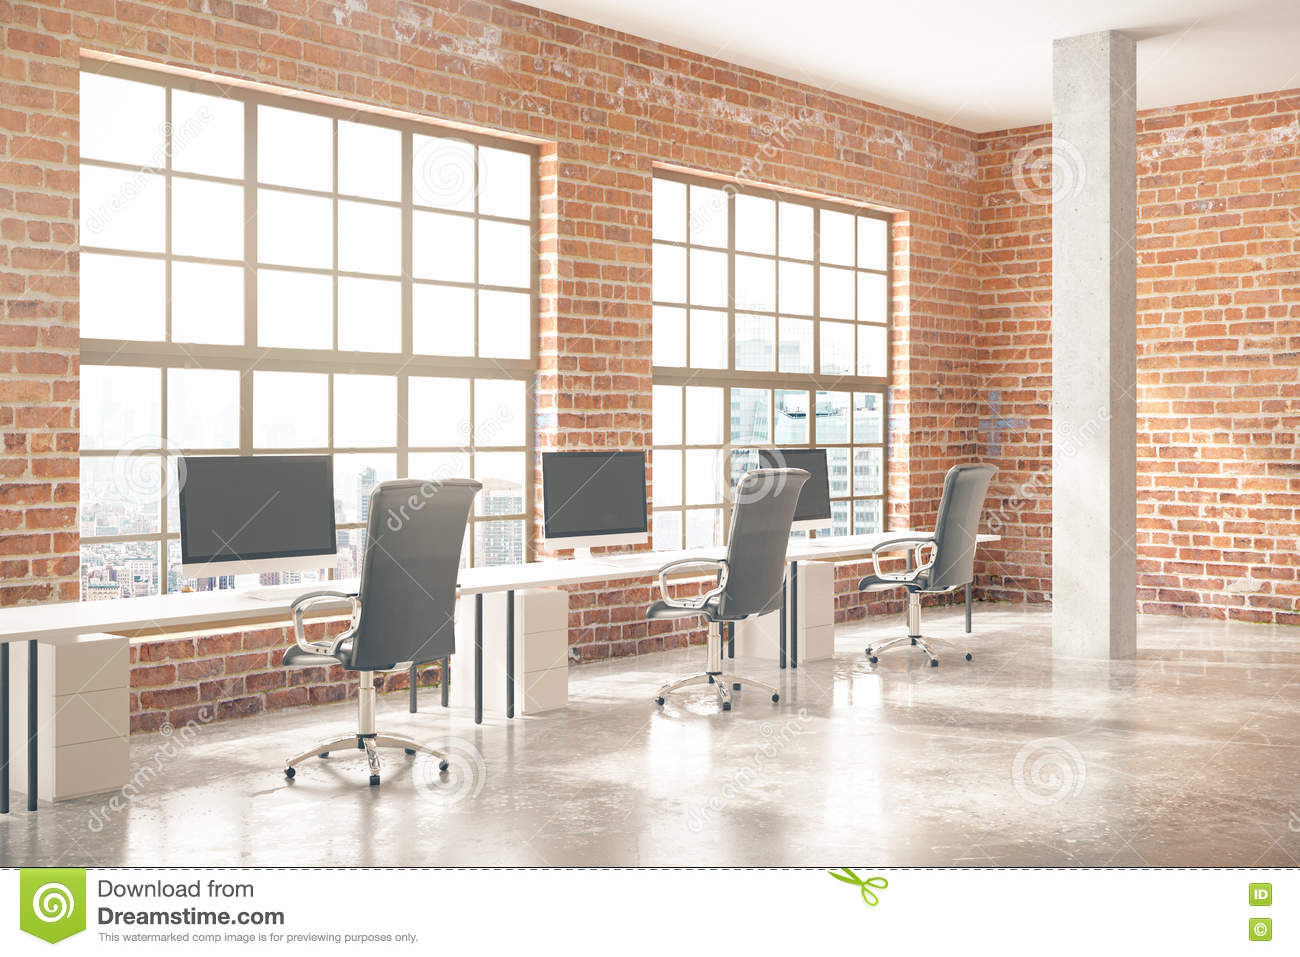 Coworking Office Interior With Computers, Concrete Floor, Red Brick Walls,  Columns And Windows With City View. 3D Rendering